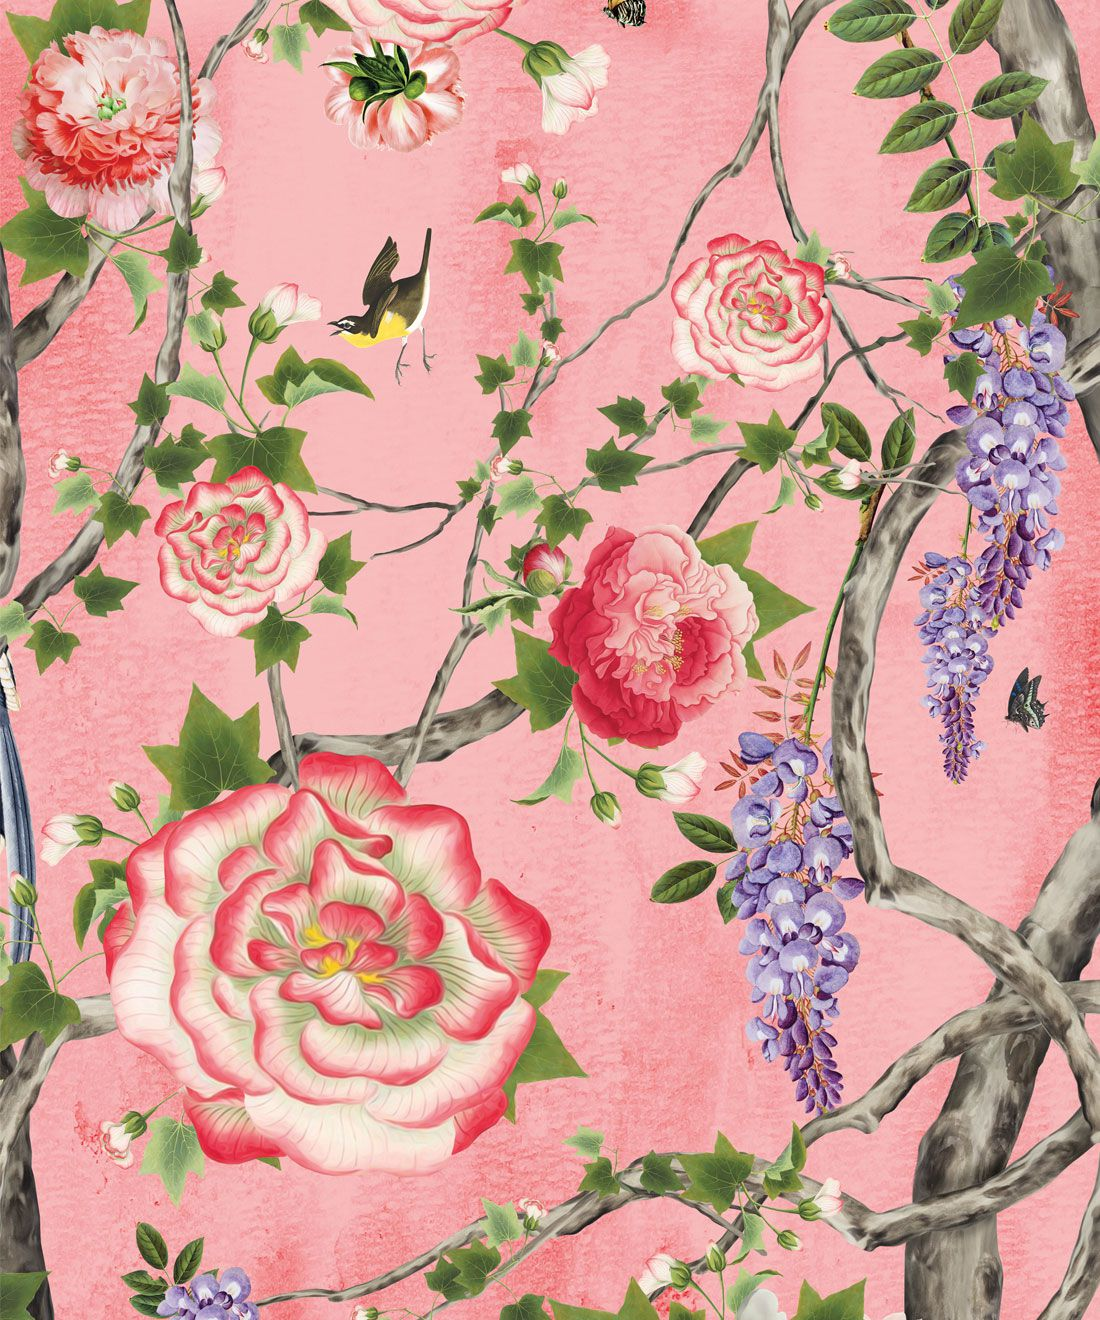 Empress Wallpaper • Romantic Wallpaper • Floral Wallpaper • Chinoiserie Wallpaper • Coral color wallpaper swatch